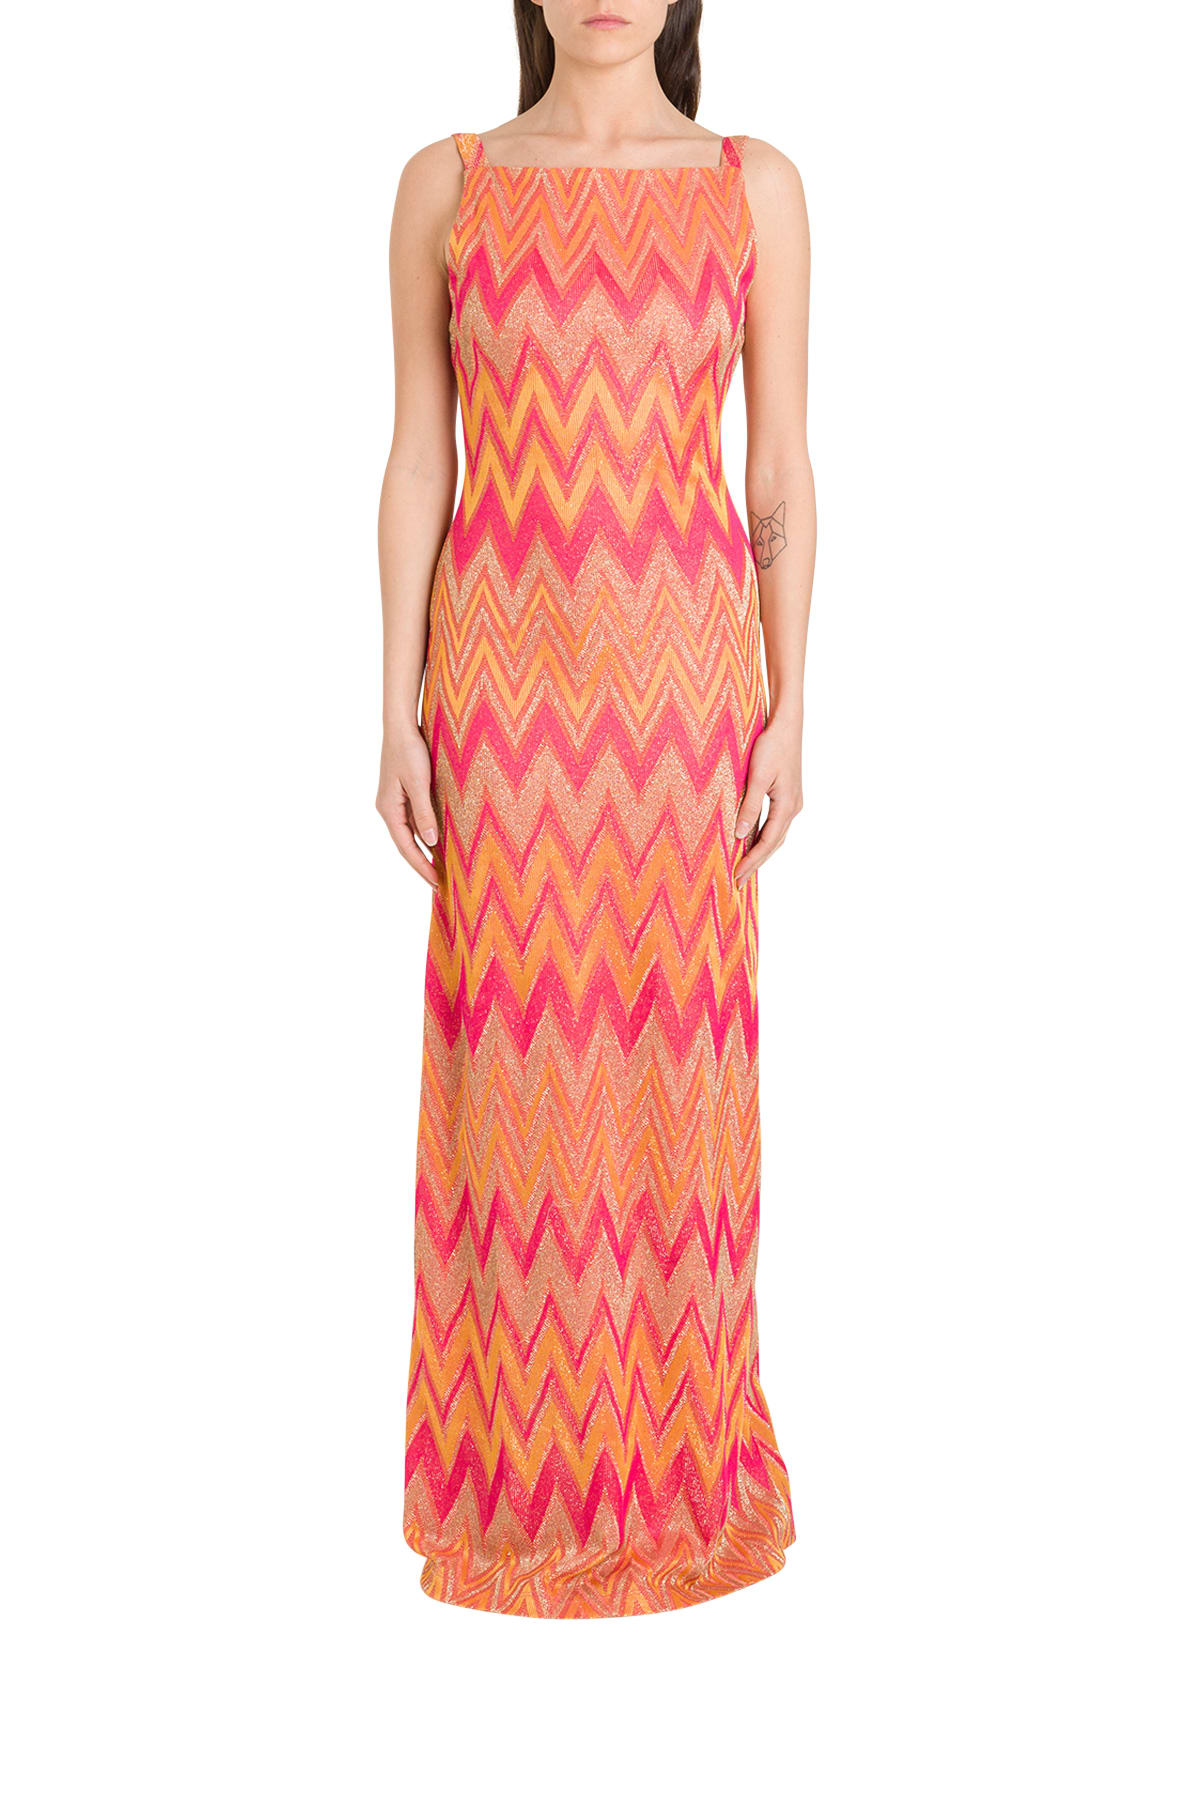 Buy M Missoni Lurex Knit Dress online, shop M Missoni with free shipping